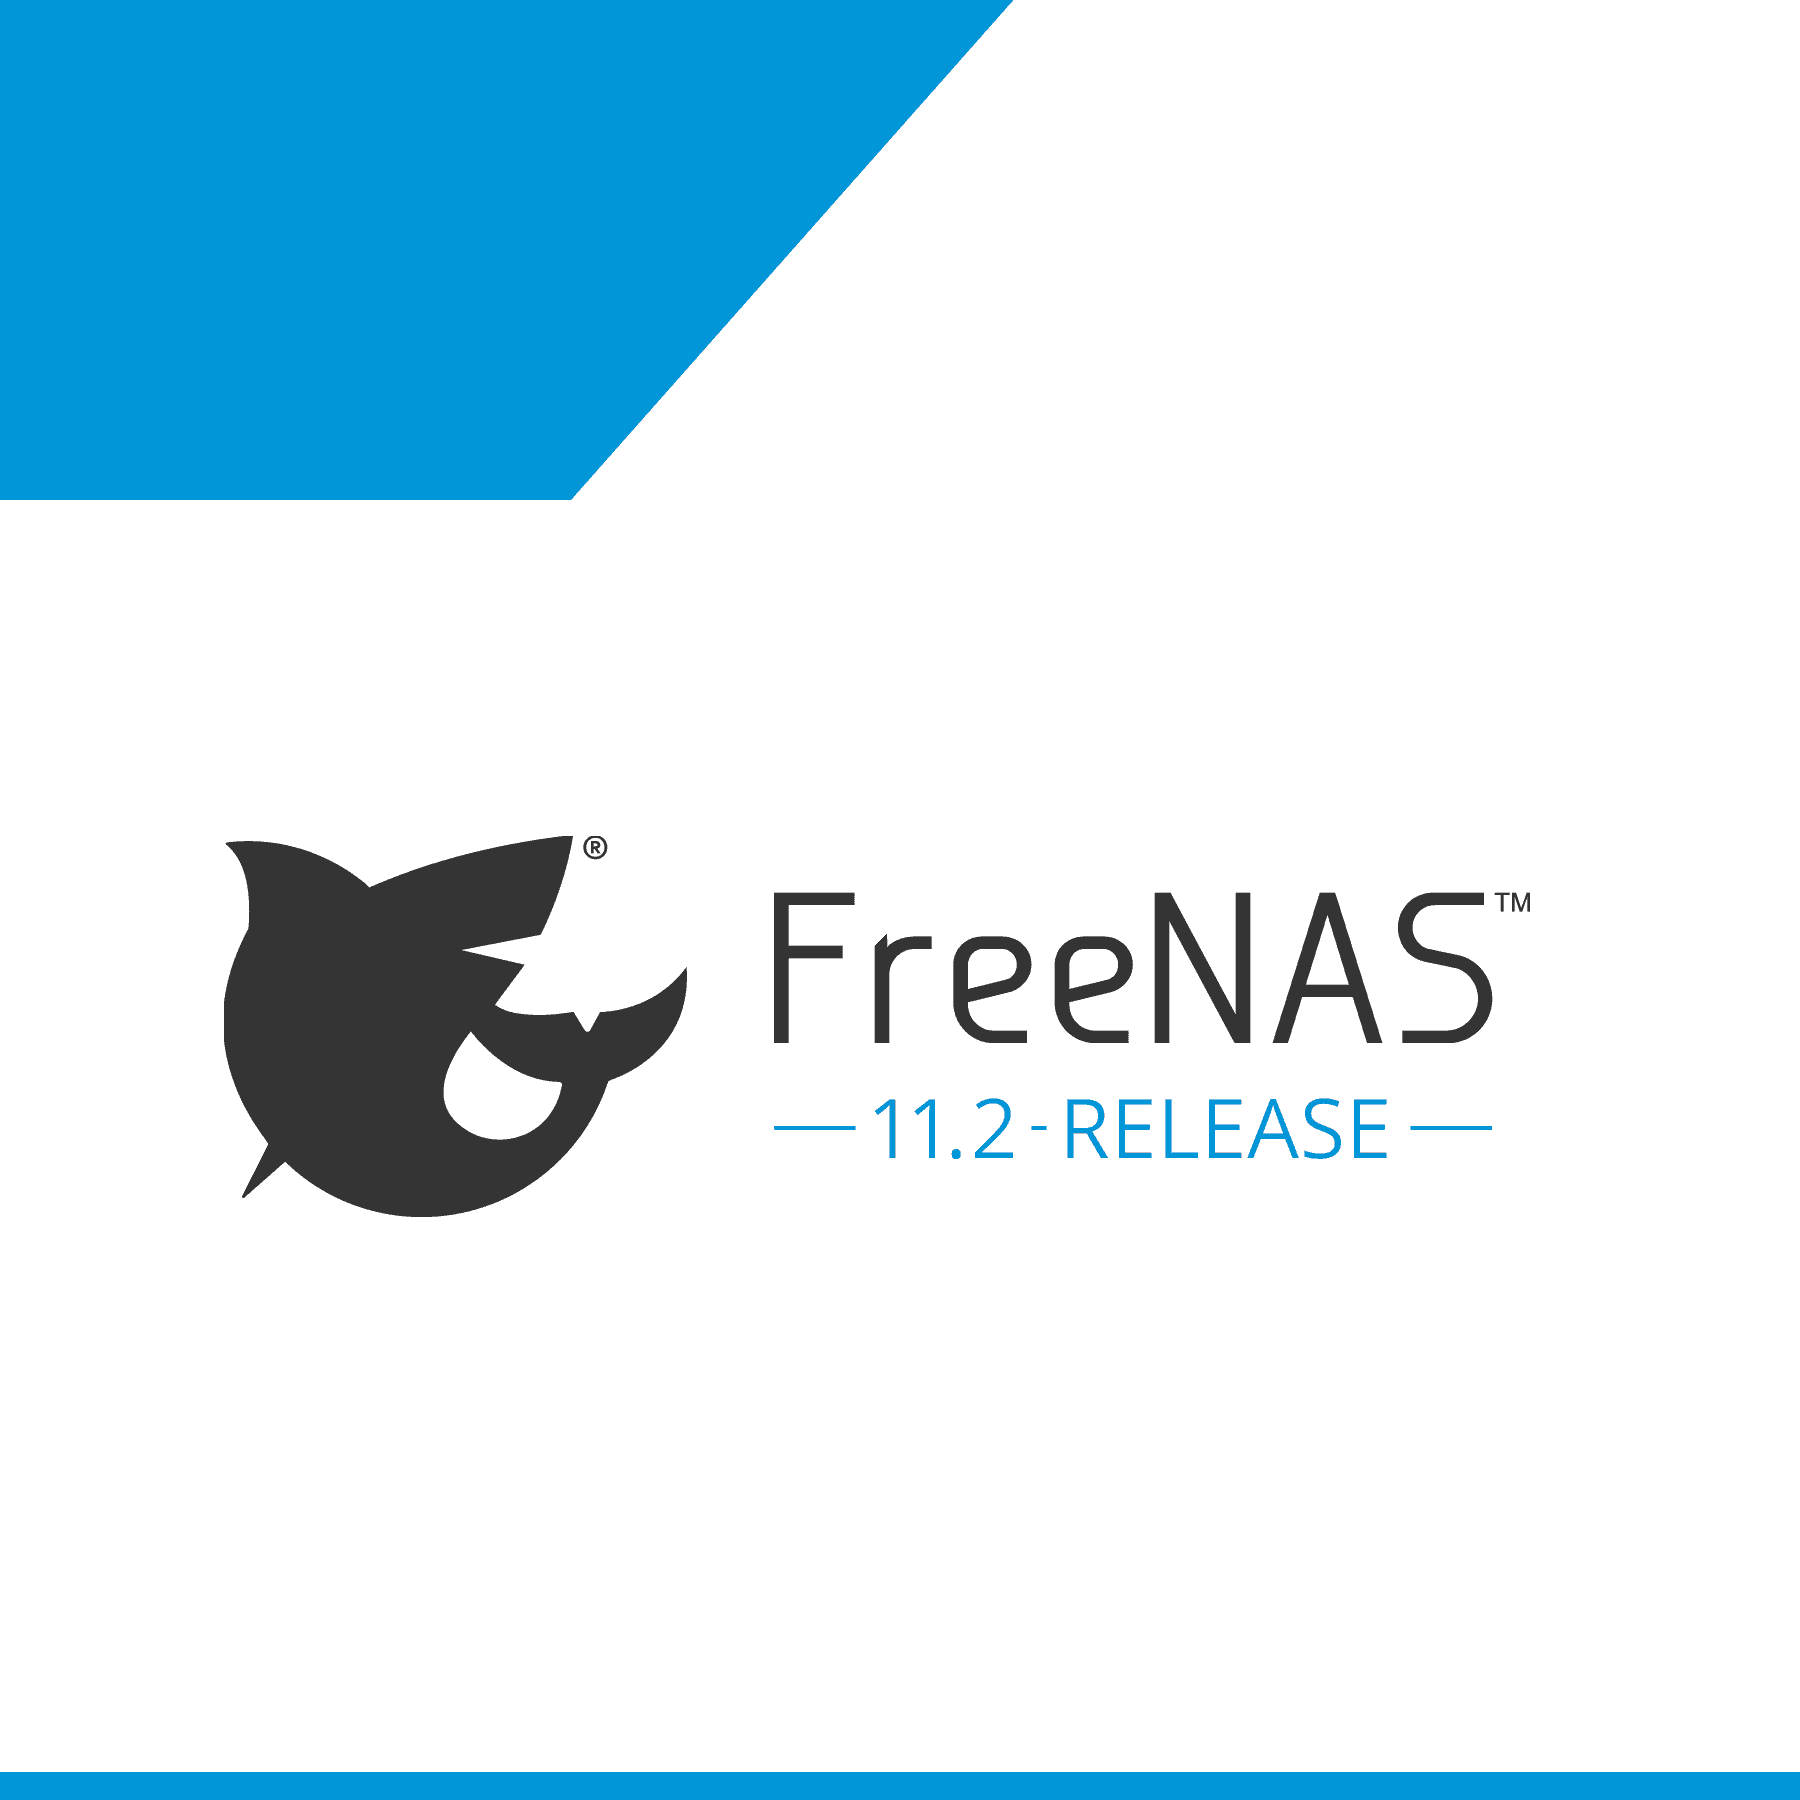 FreeNAS® 11.2 Brings New Web Interface, Virtualization, and Security Features To The World's #1 Software-Defined Storage